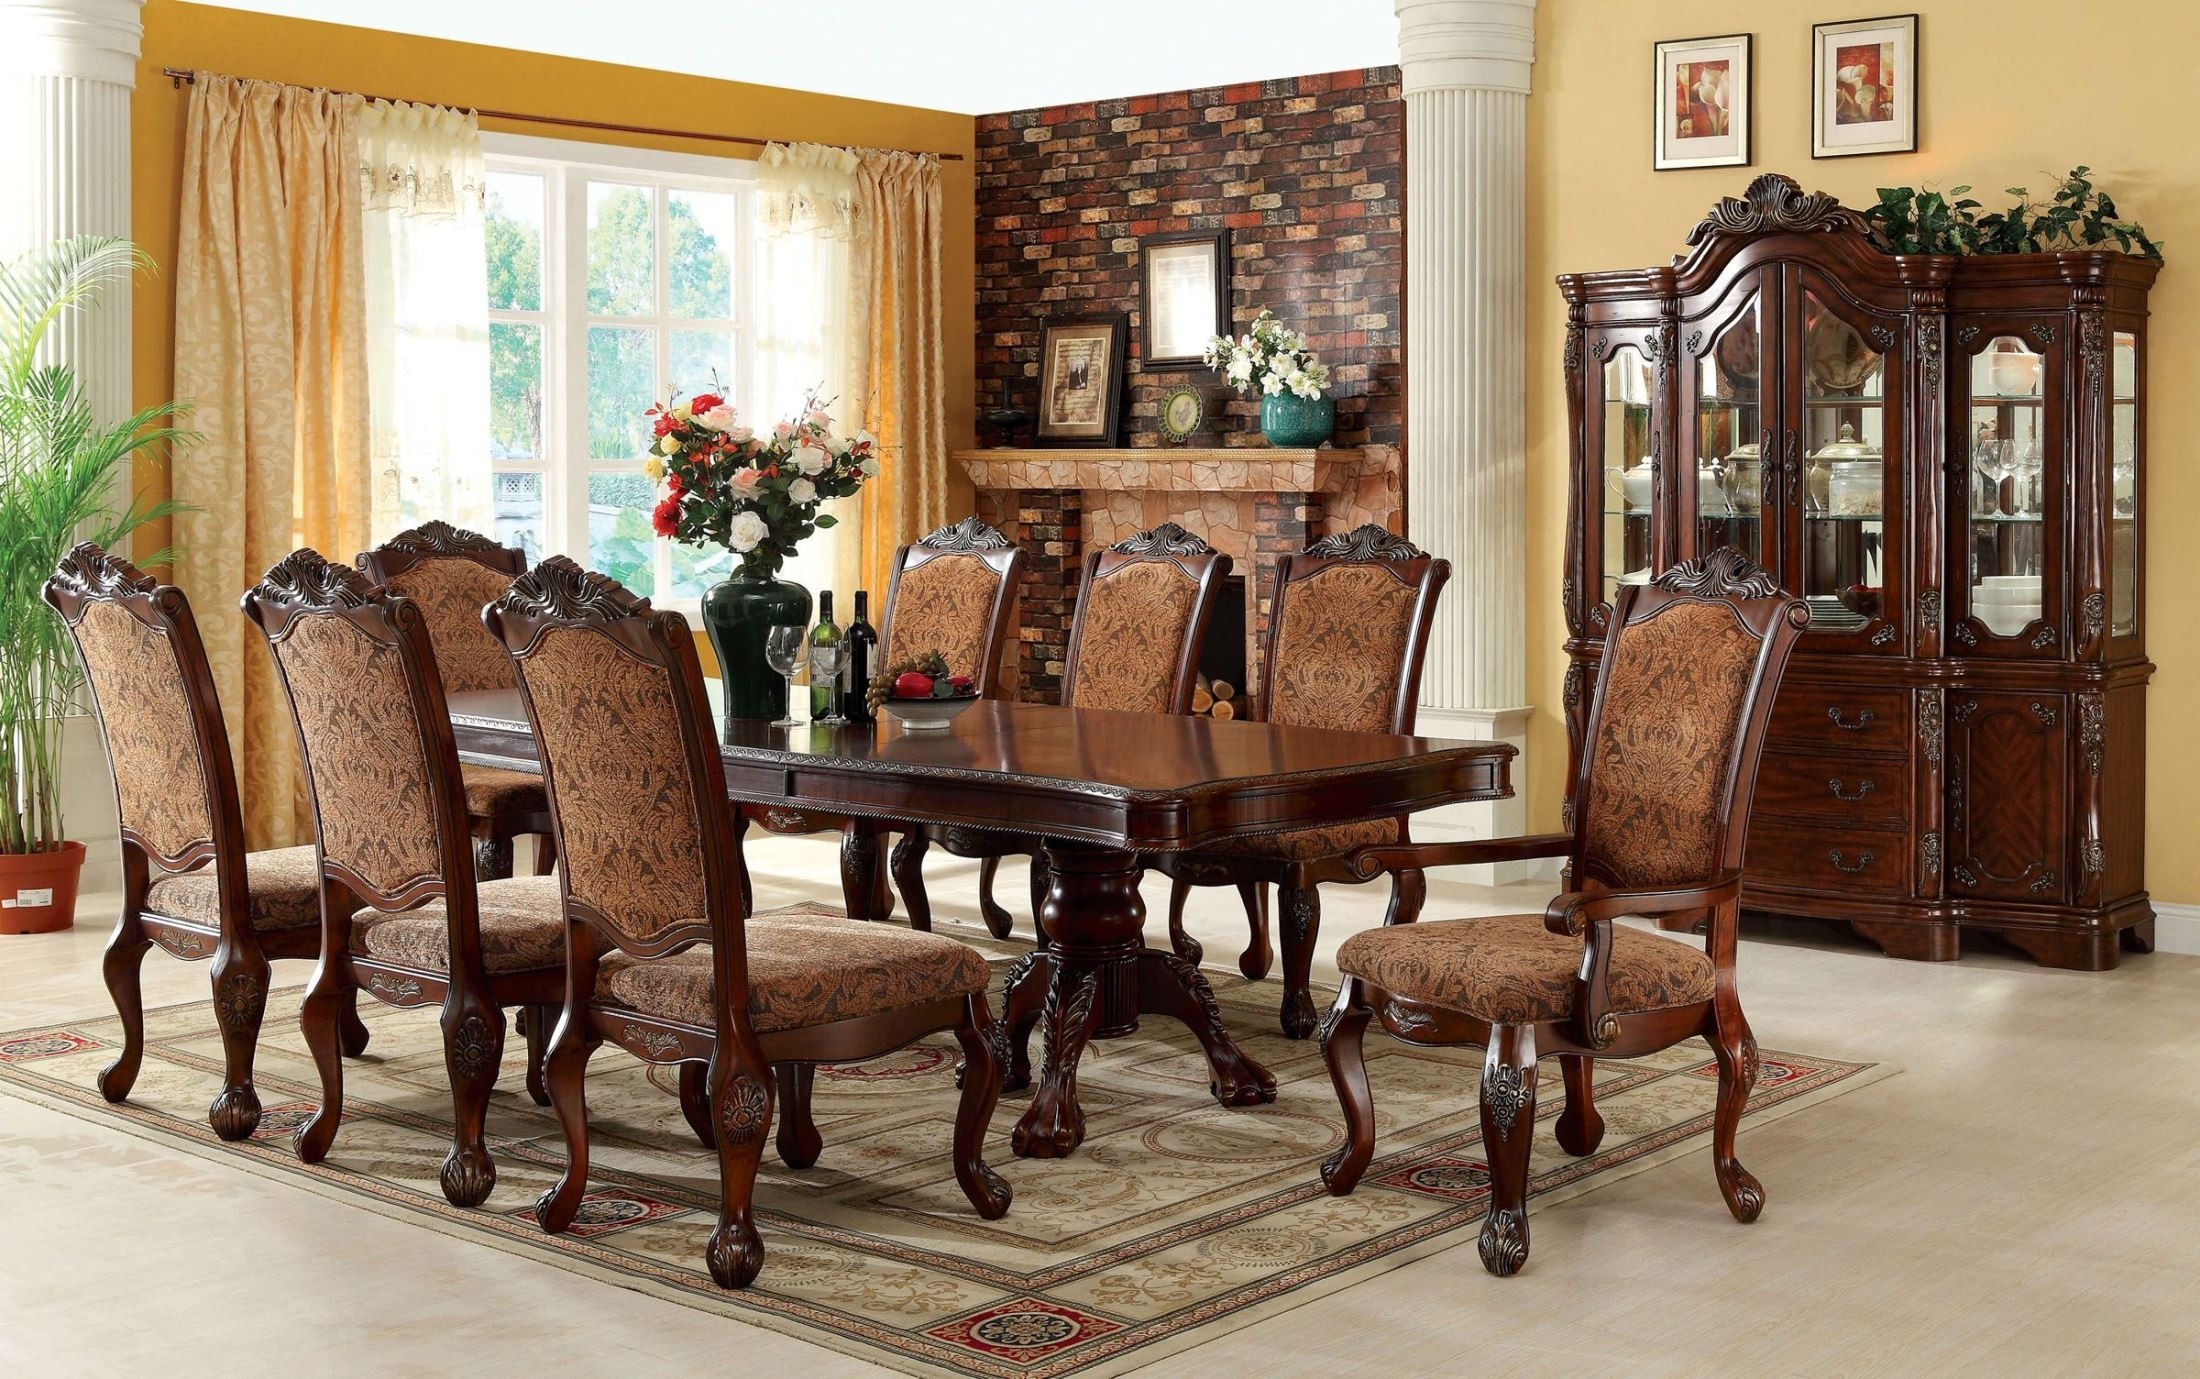 Cromwell antique cherry formal dining room set cm3103t for Formal dining room sets